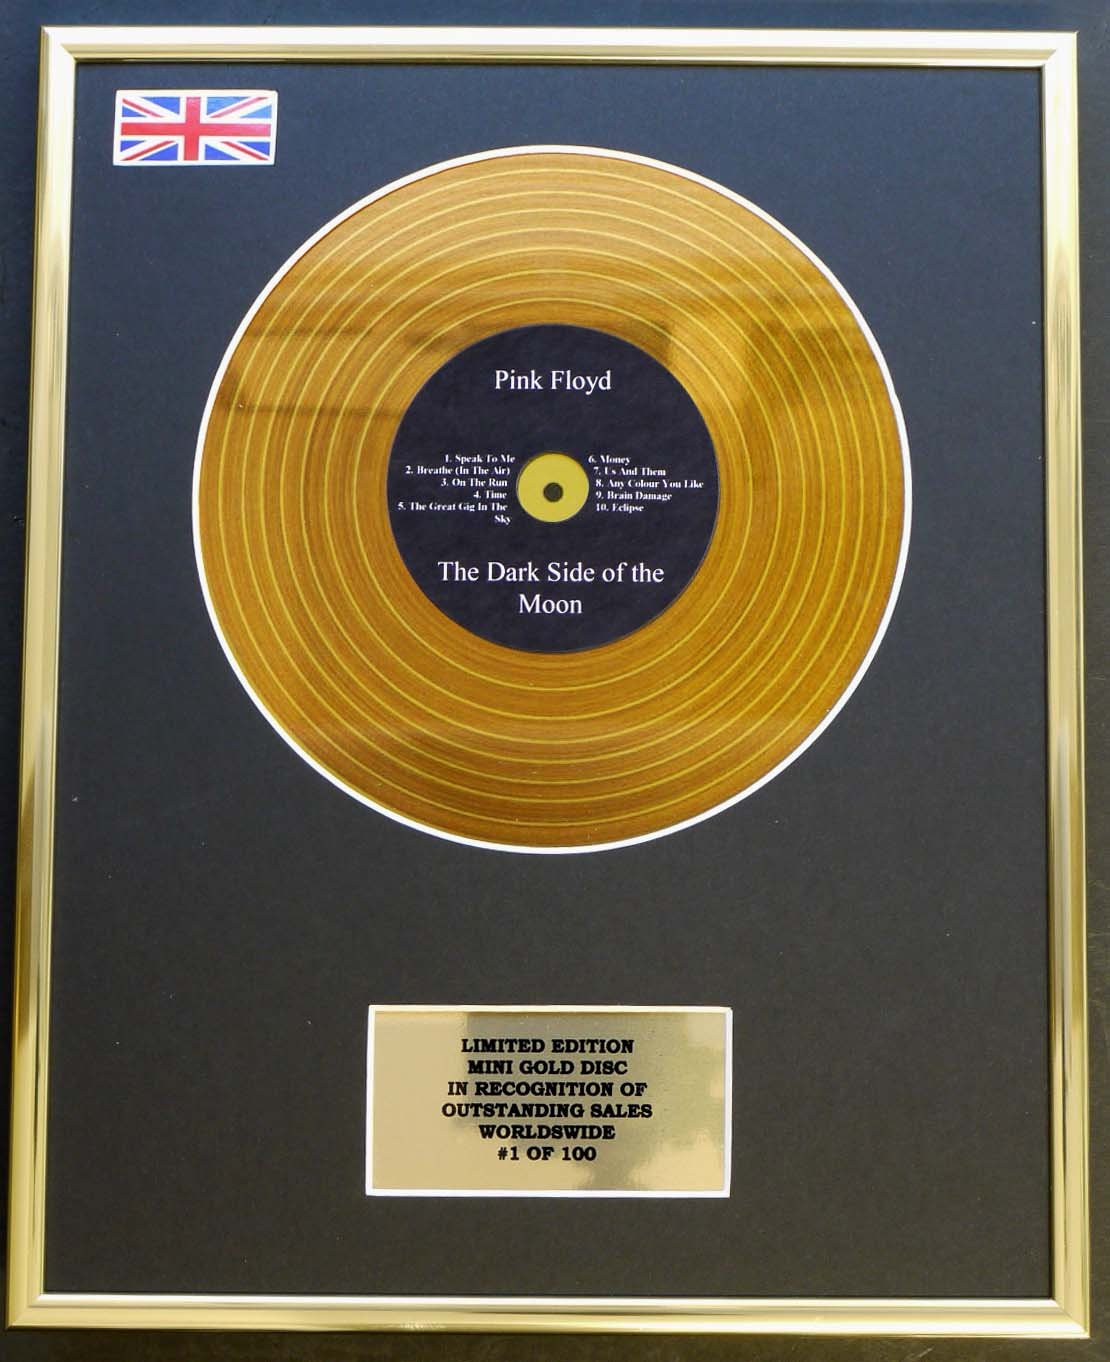 PINK FLOYD / MINI METAL GOLD DISC DISPLAY / EDIZIONE LIMITATA / COA / THE DARK SIDE OF THE MOON Everythingcollectible